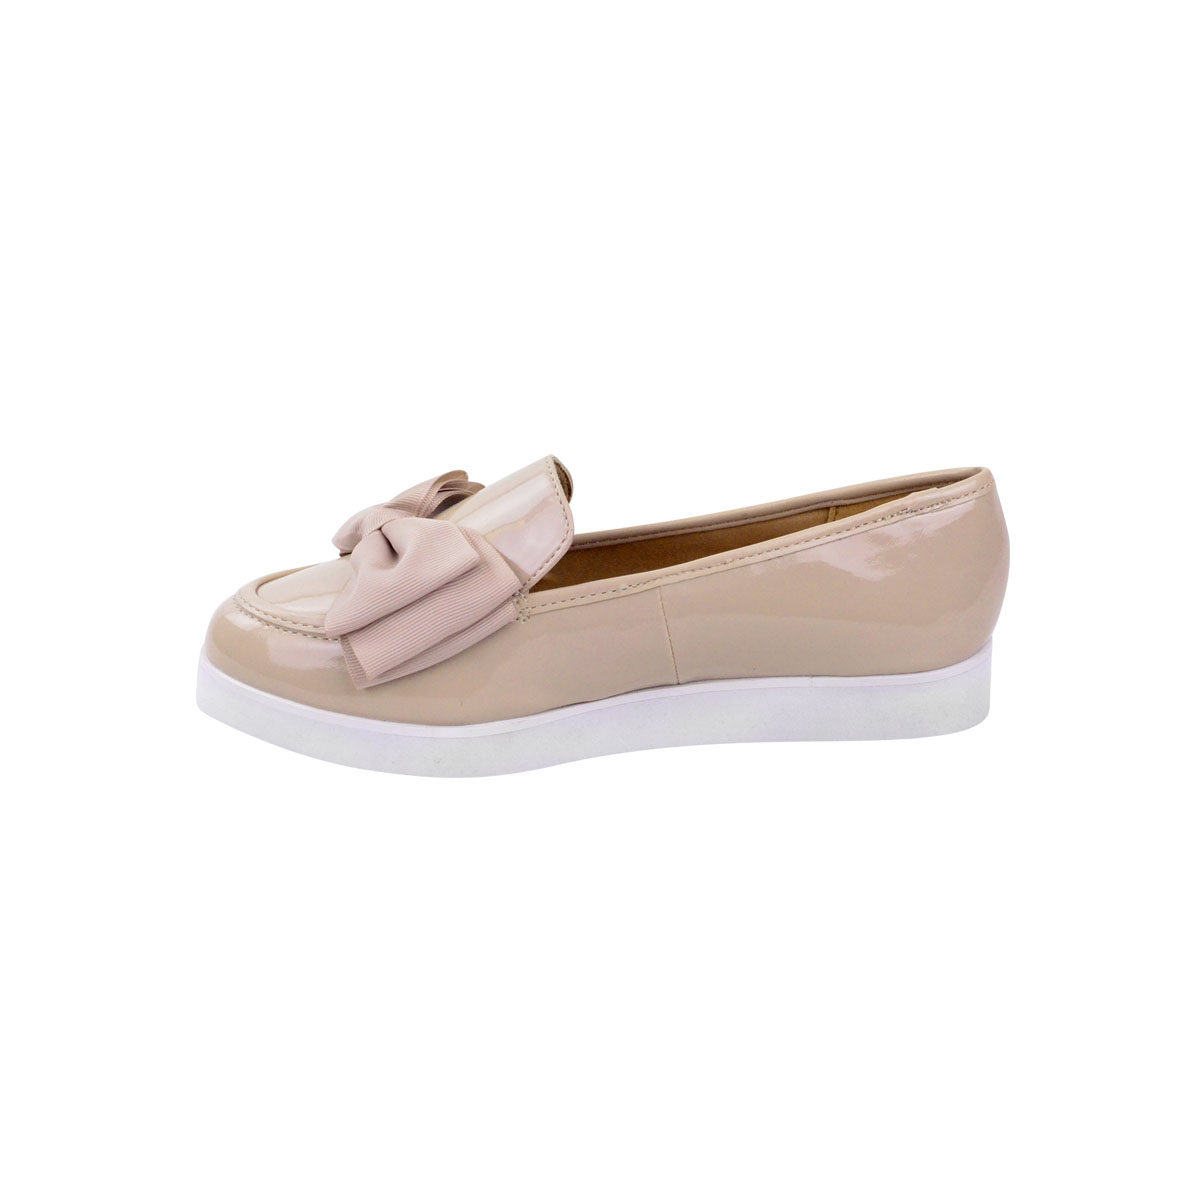 WOMENS-LADIES-GIRLS-NEW-FLAT-OFFICE-SCHOOL-SHOES-SMART-FORMAL-LOAFERS-PUMPS-SIZE thumbnail 9